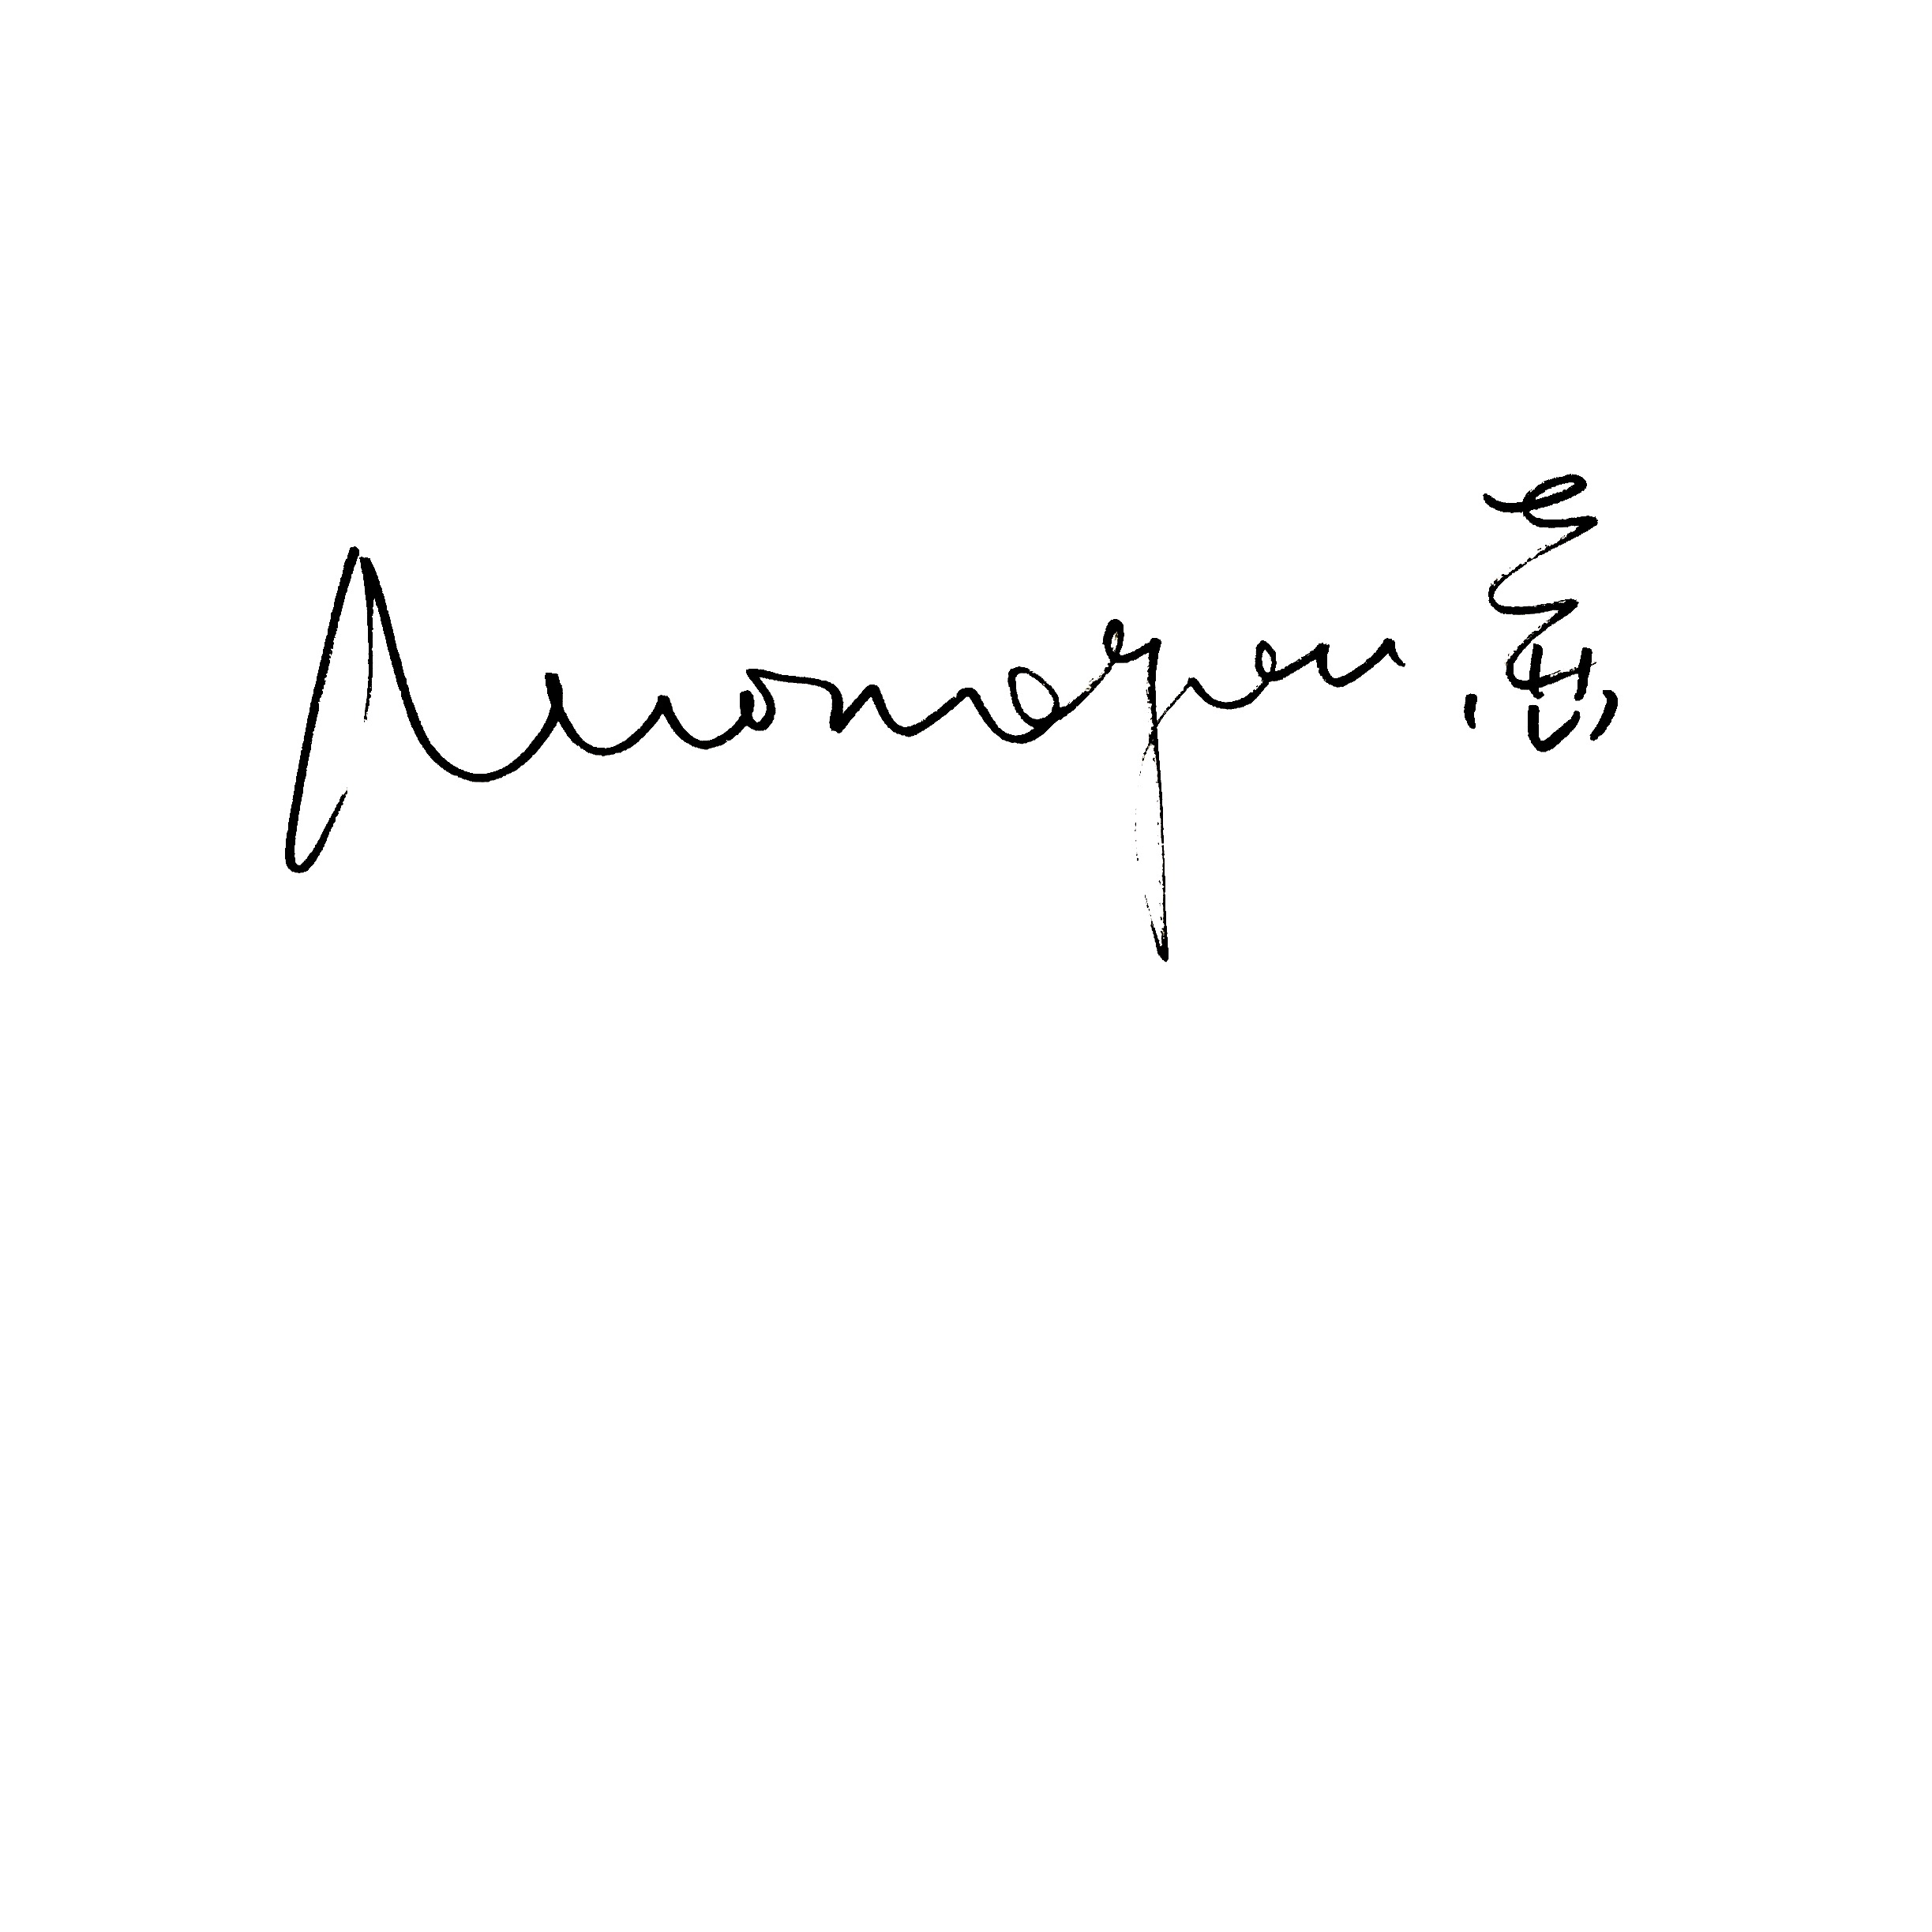 Momoyan Evan-Jones's Signature